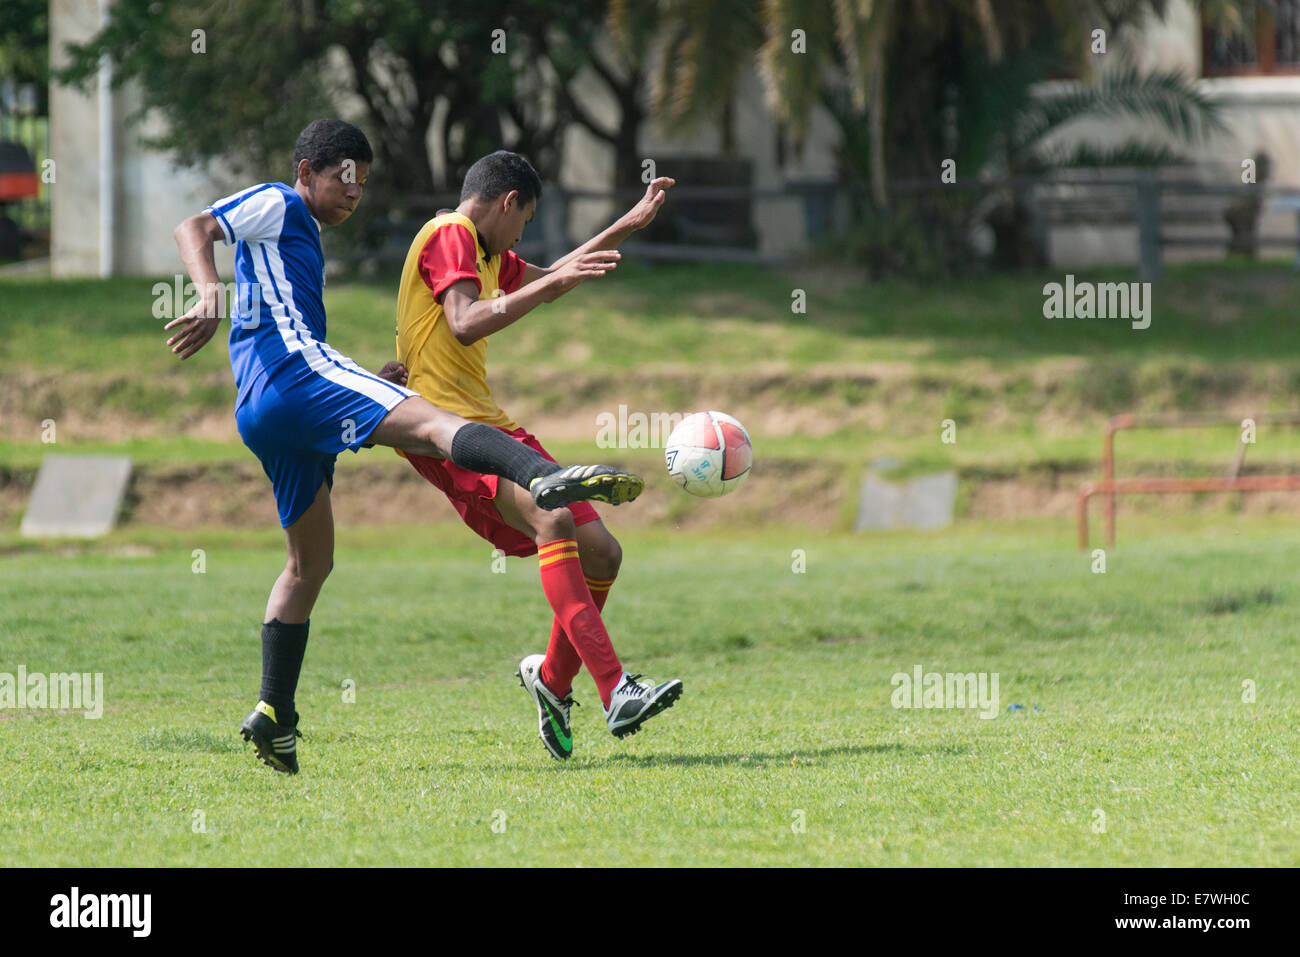 Football striker kicking the ball hard, defender trying to defend, Cape Town, South Africa - Stock Image